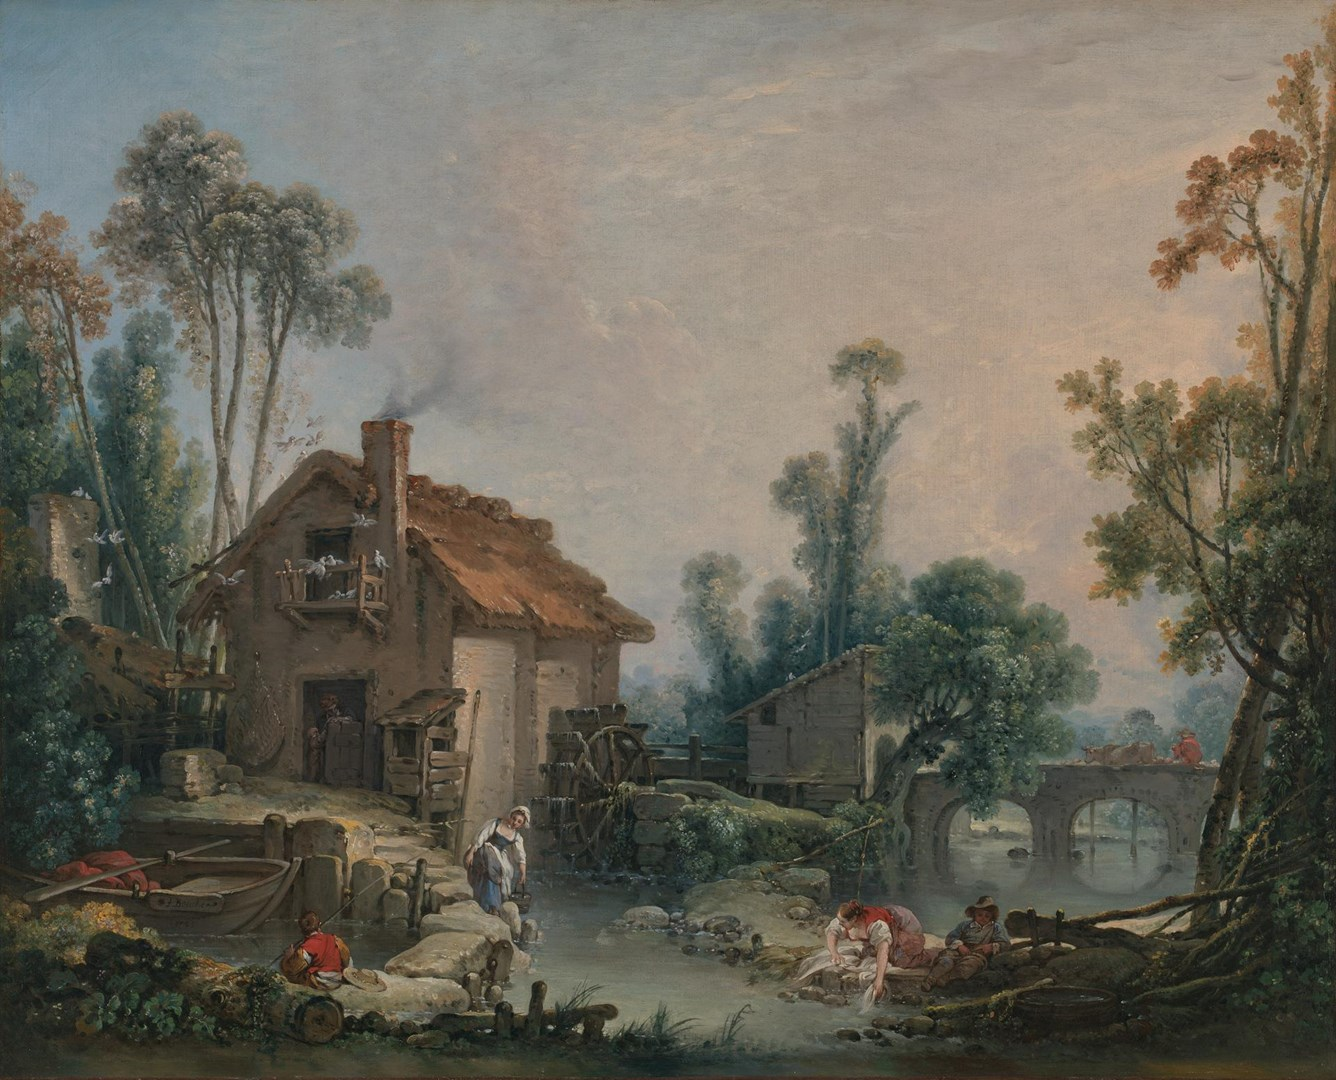 Landscape with a Watermill by François Boucher